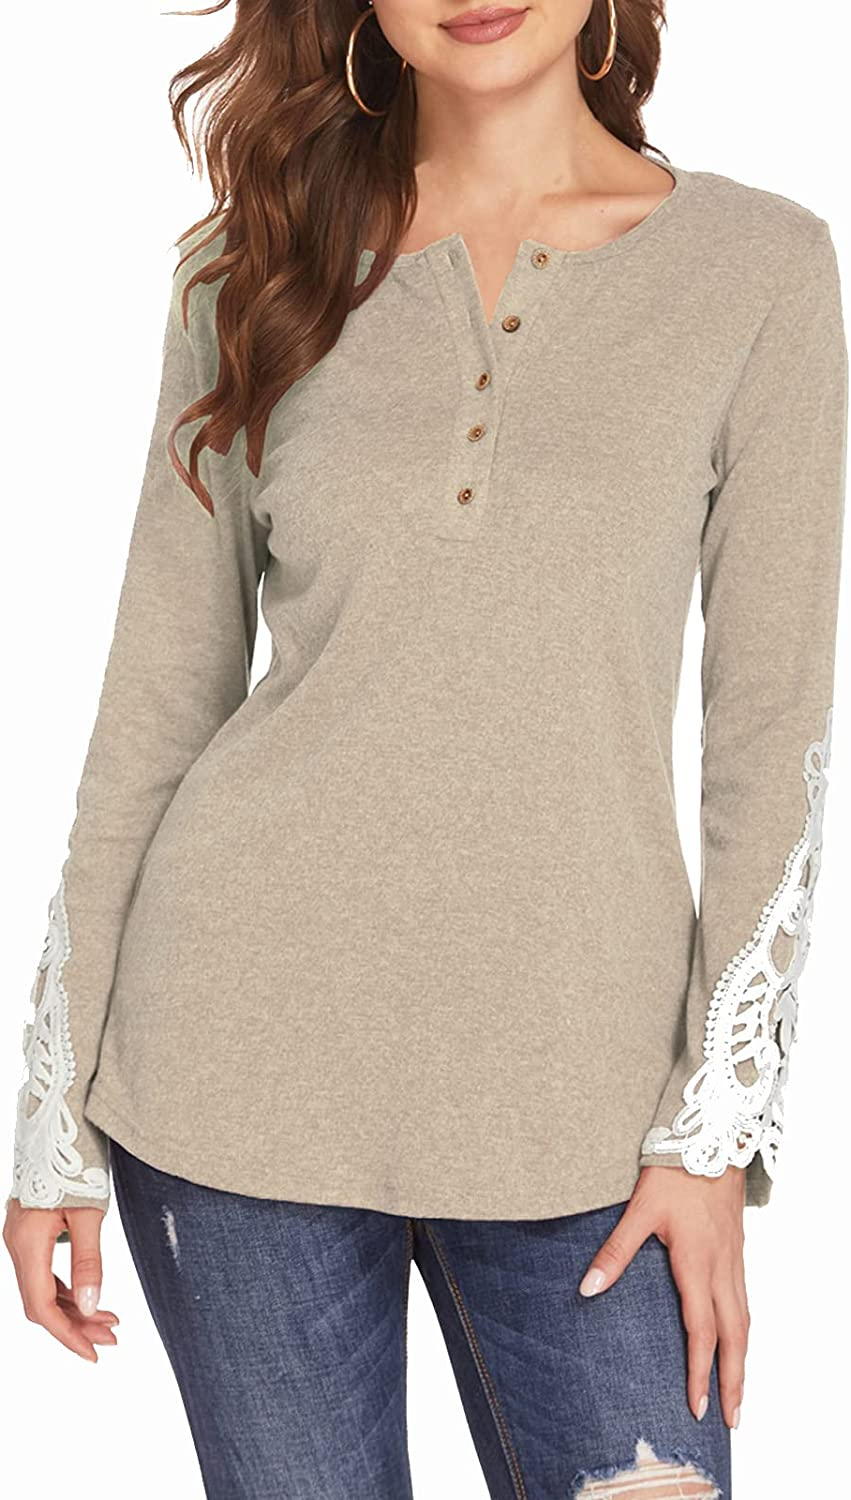 Newchoice Womens Long Sleeve Shirts V Neck Lace Button Down Henley Tunic Tops